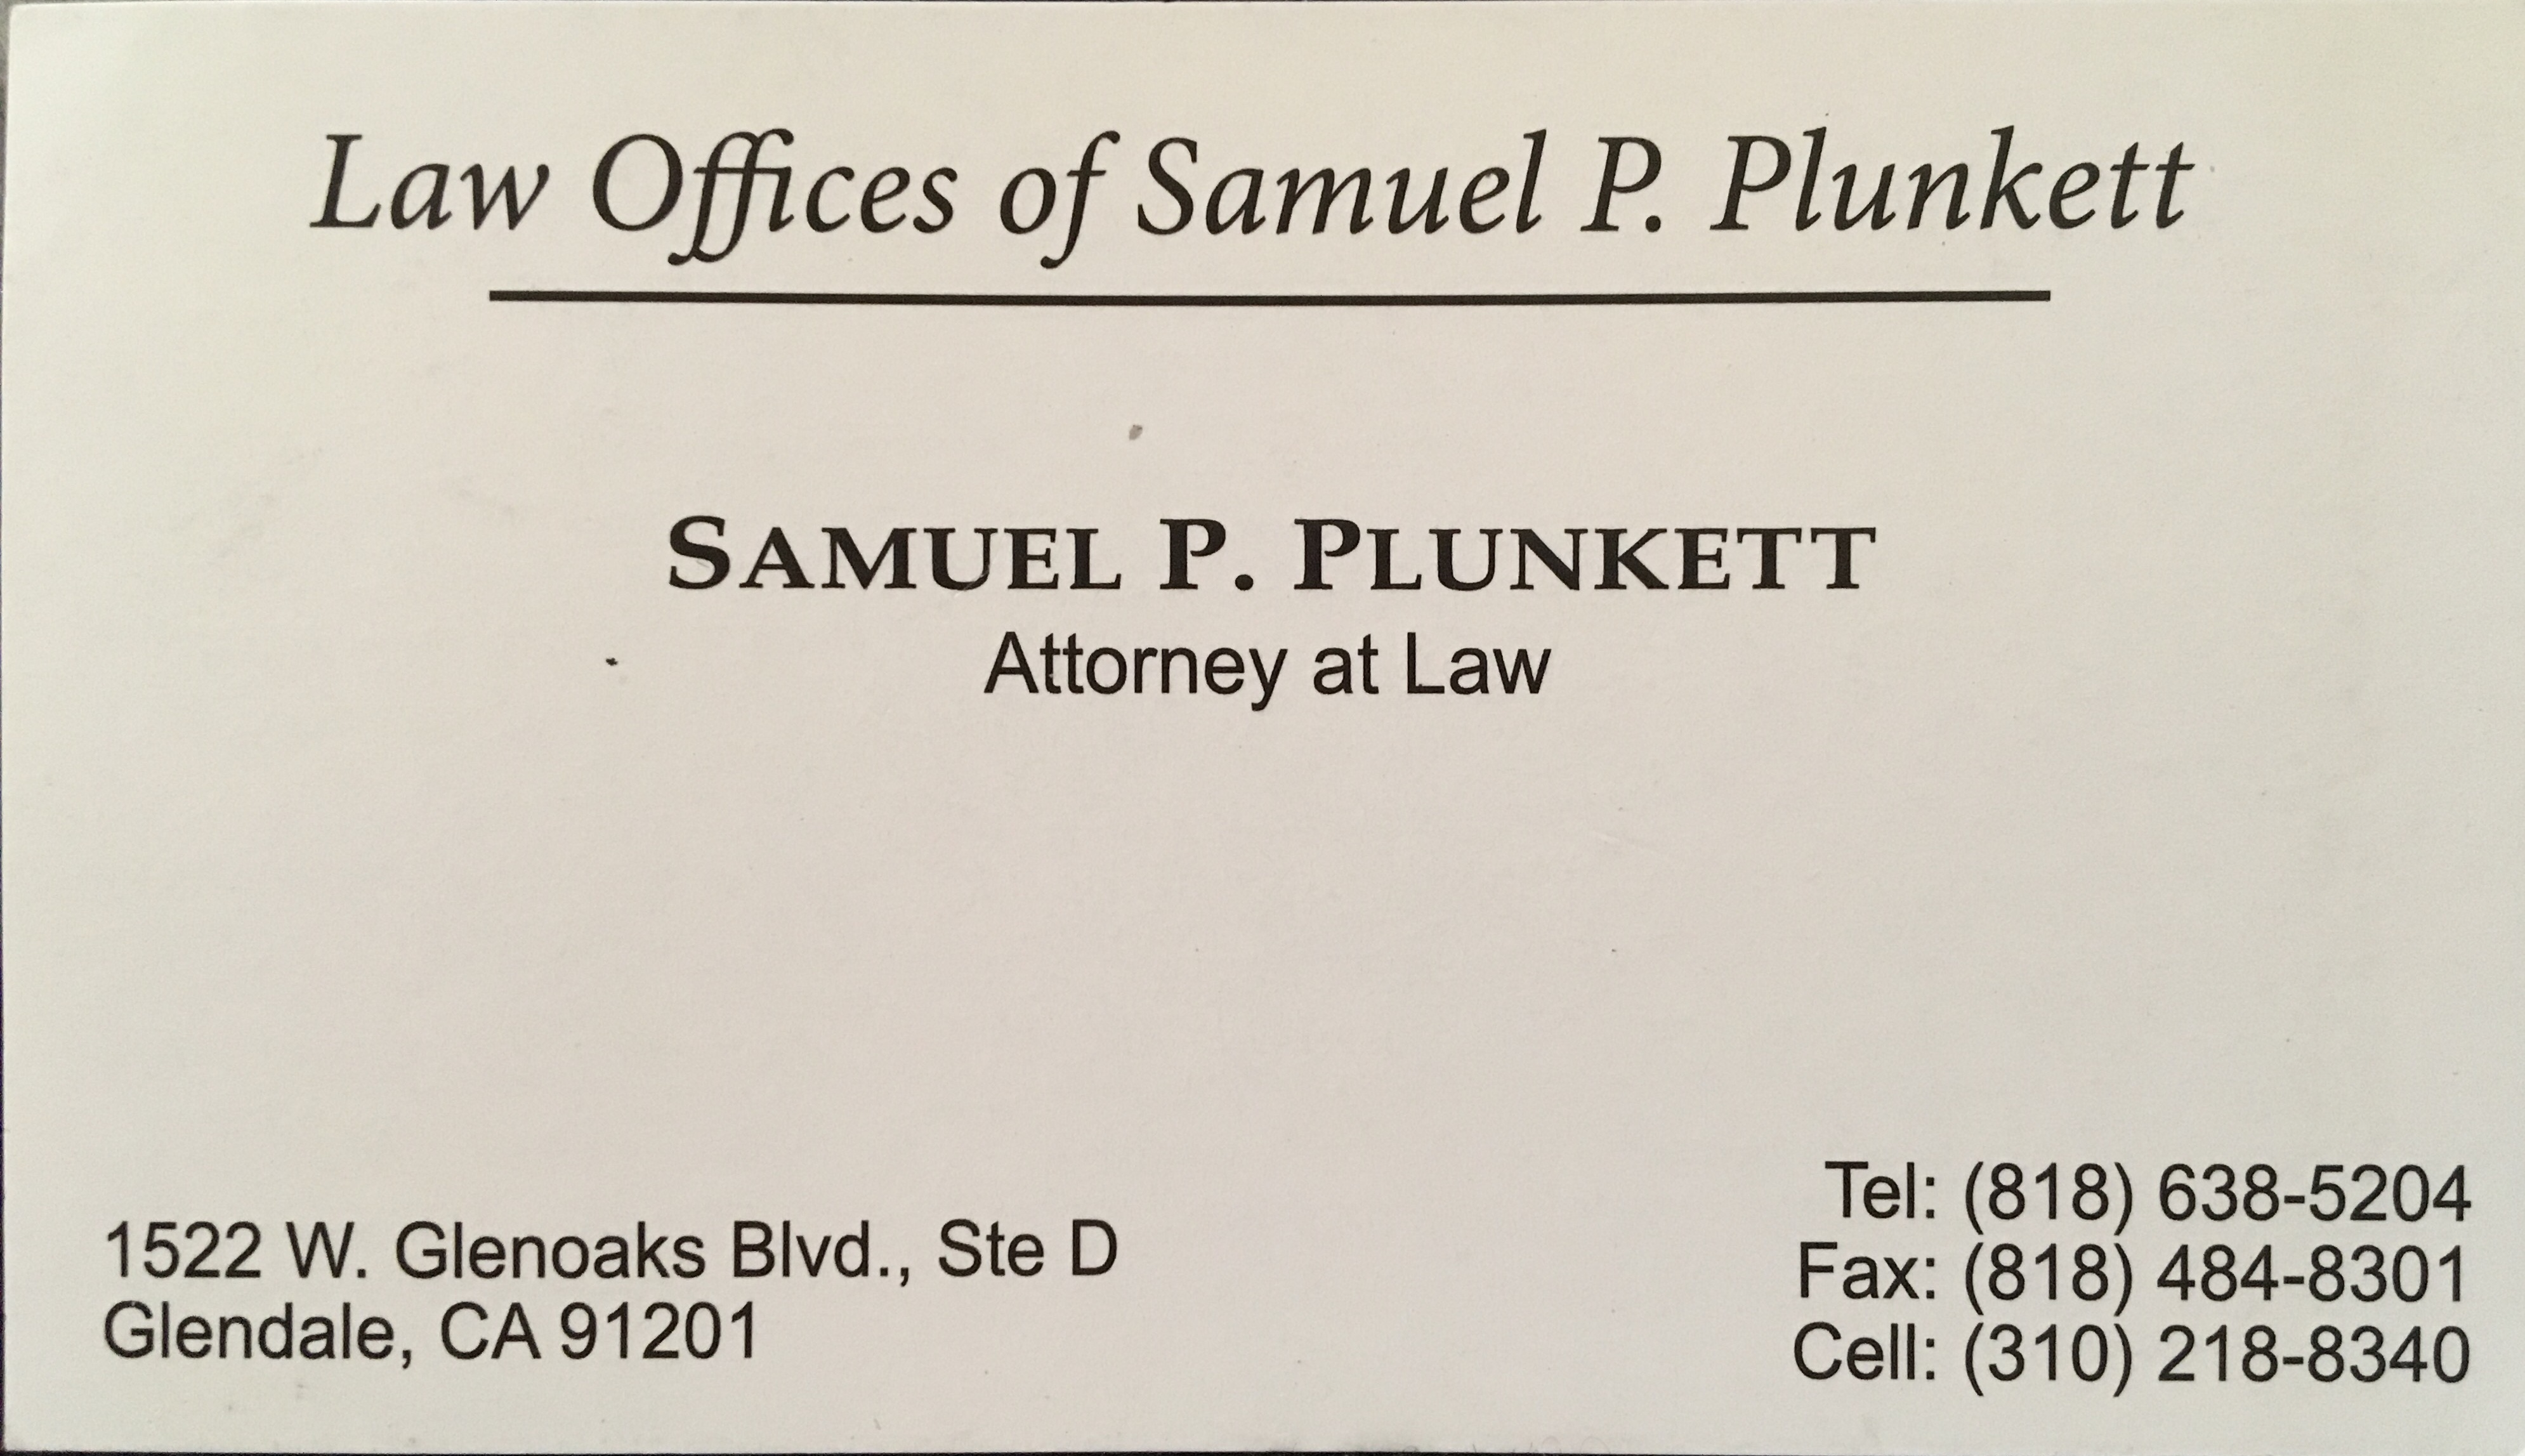 Law Offices Of Samuel P. Plunkett